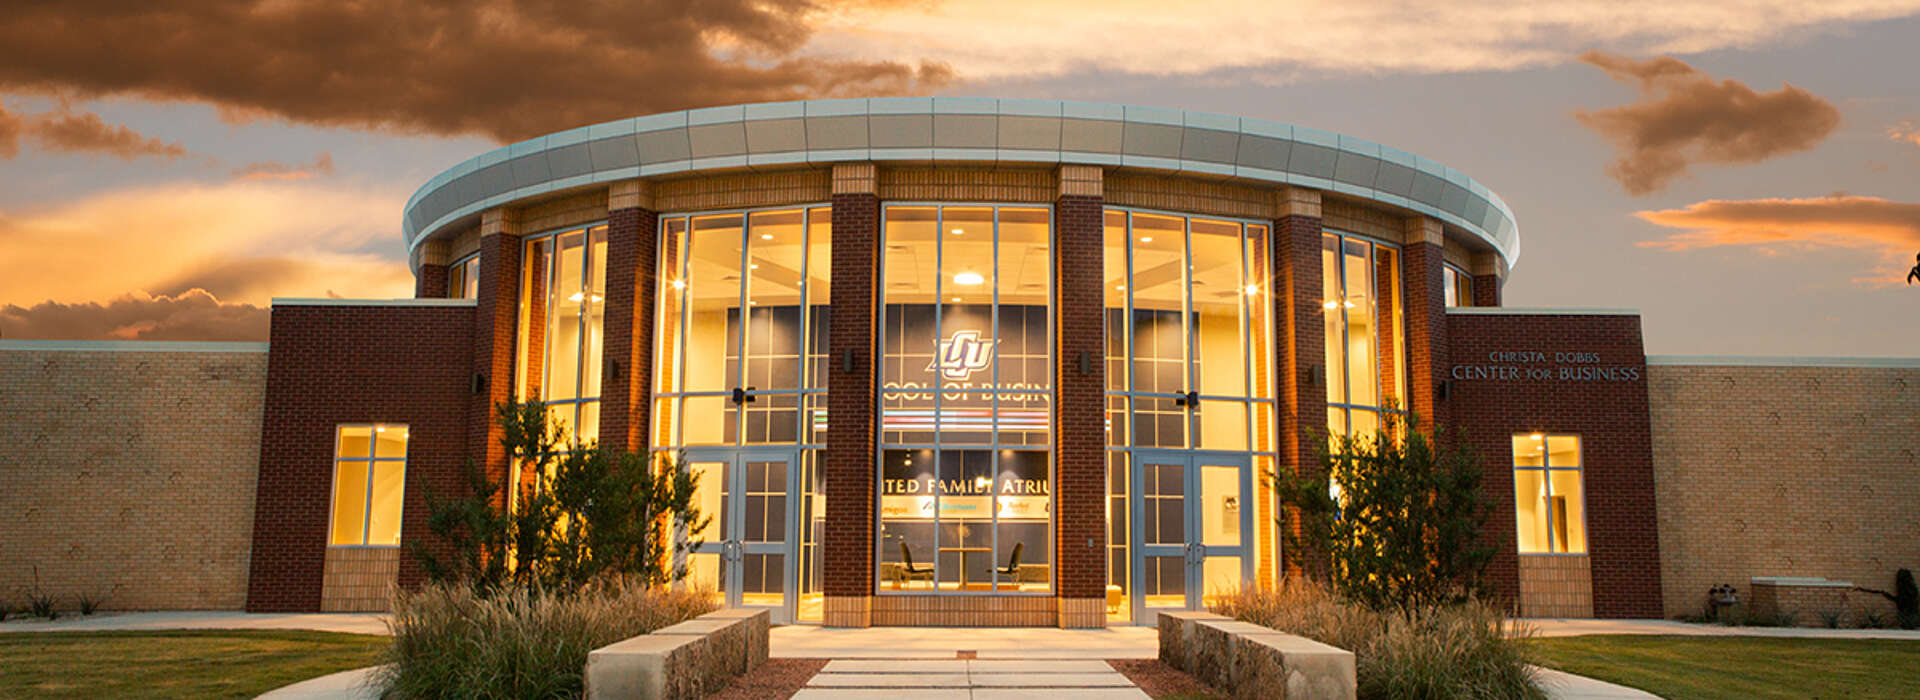 LCU School of Business at sunset